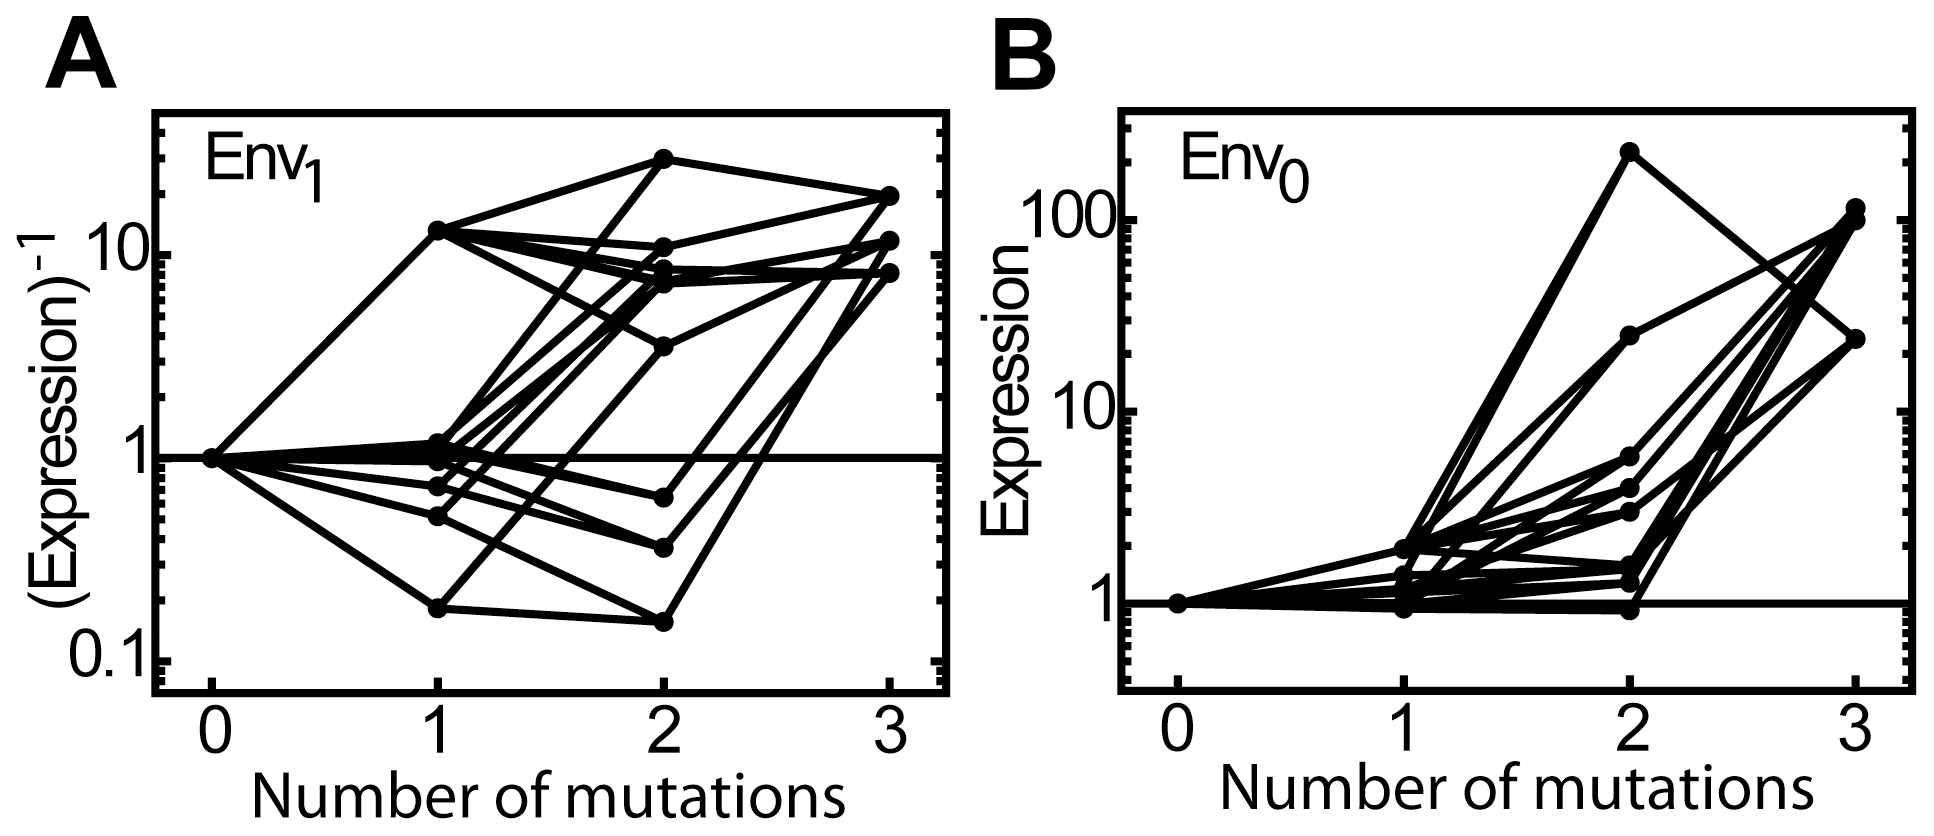 Mutational effects on expression in both environments.